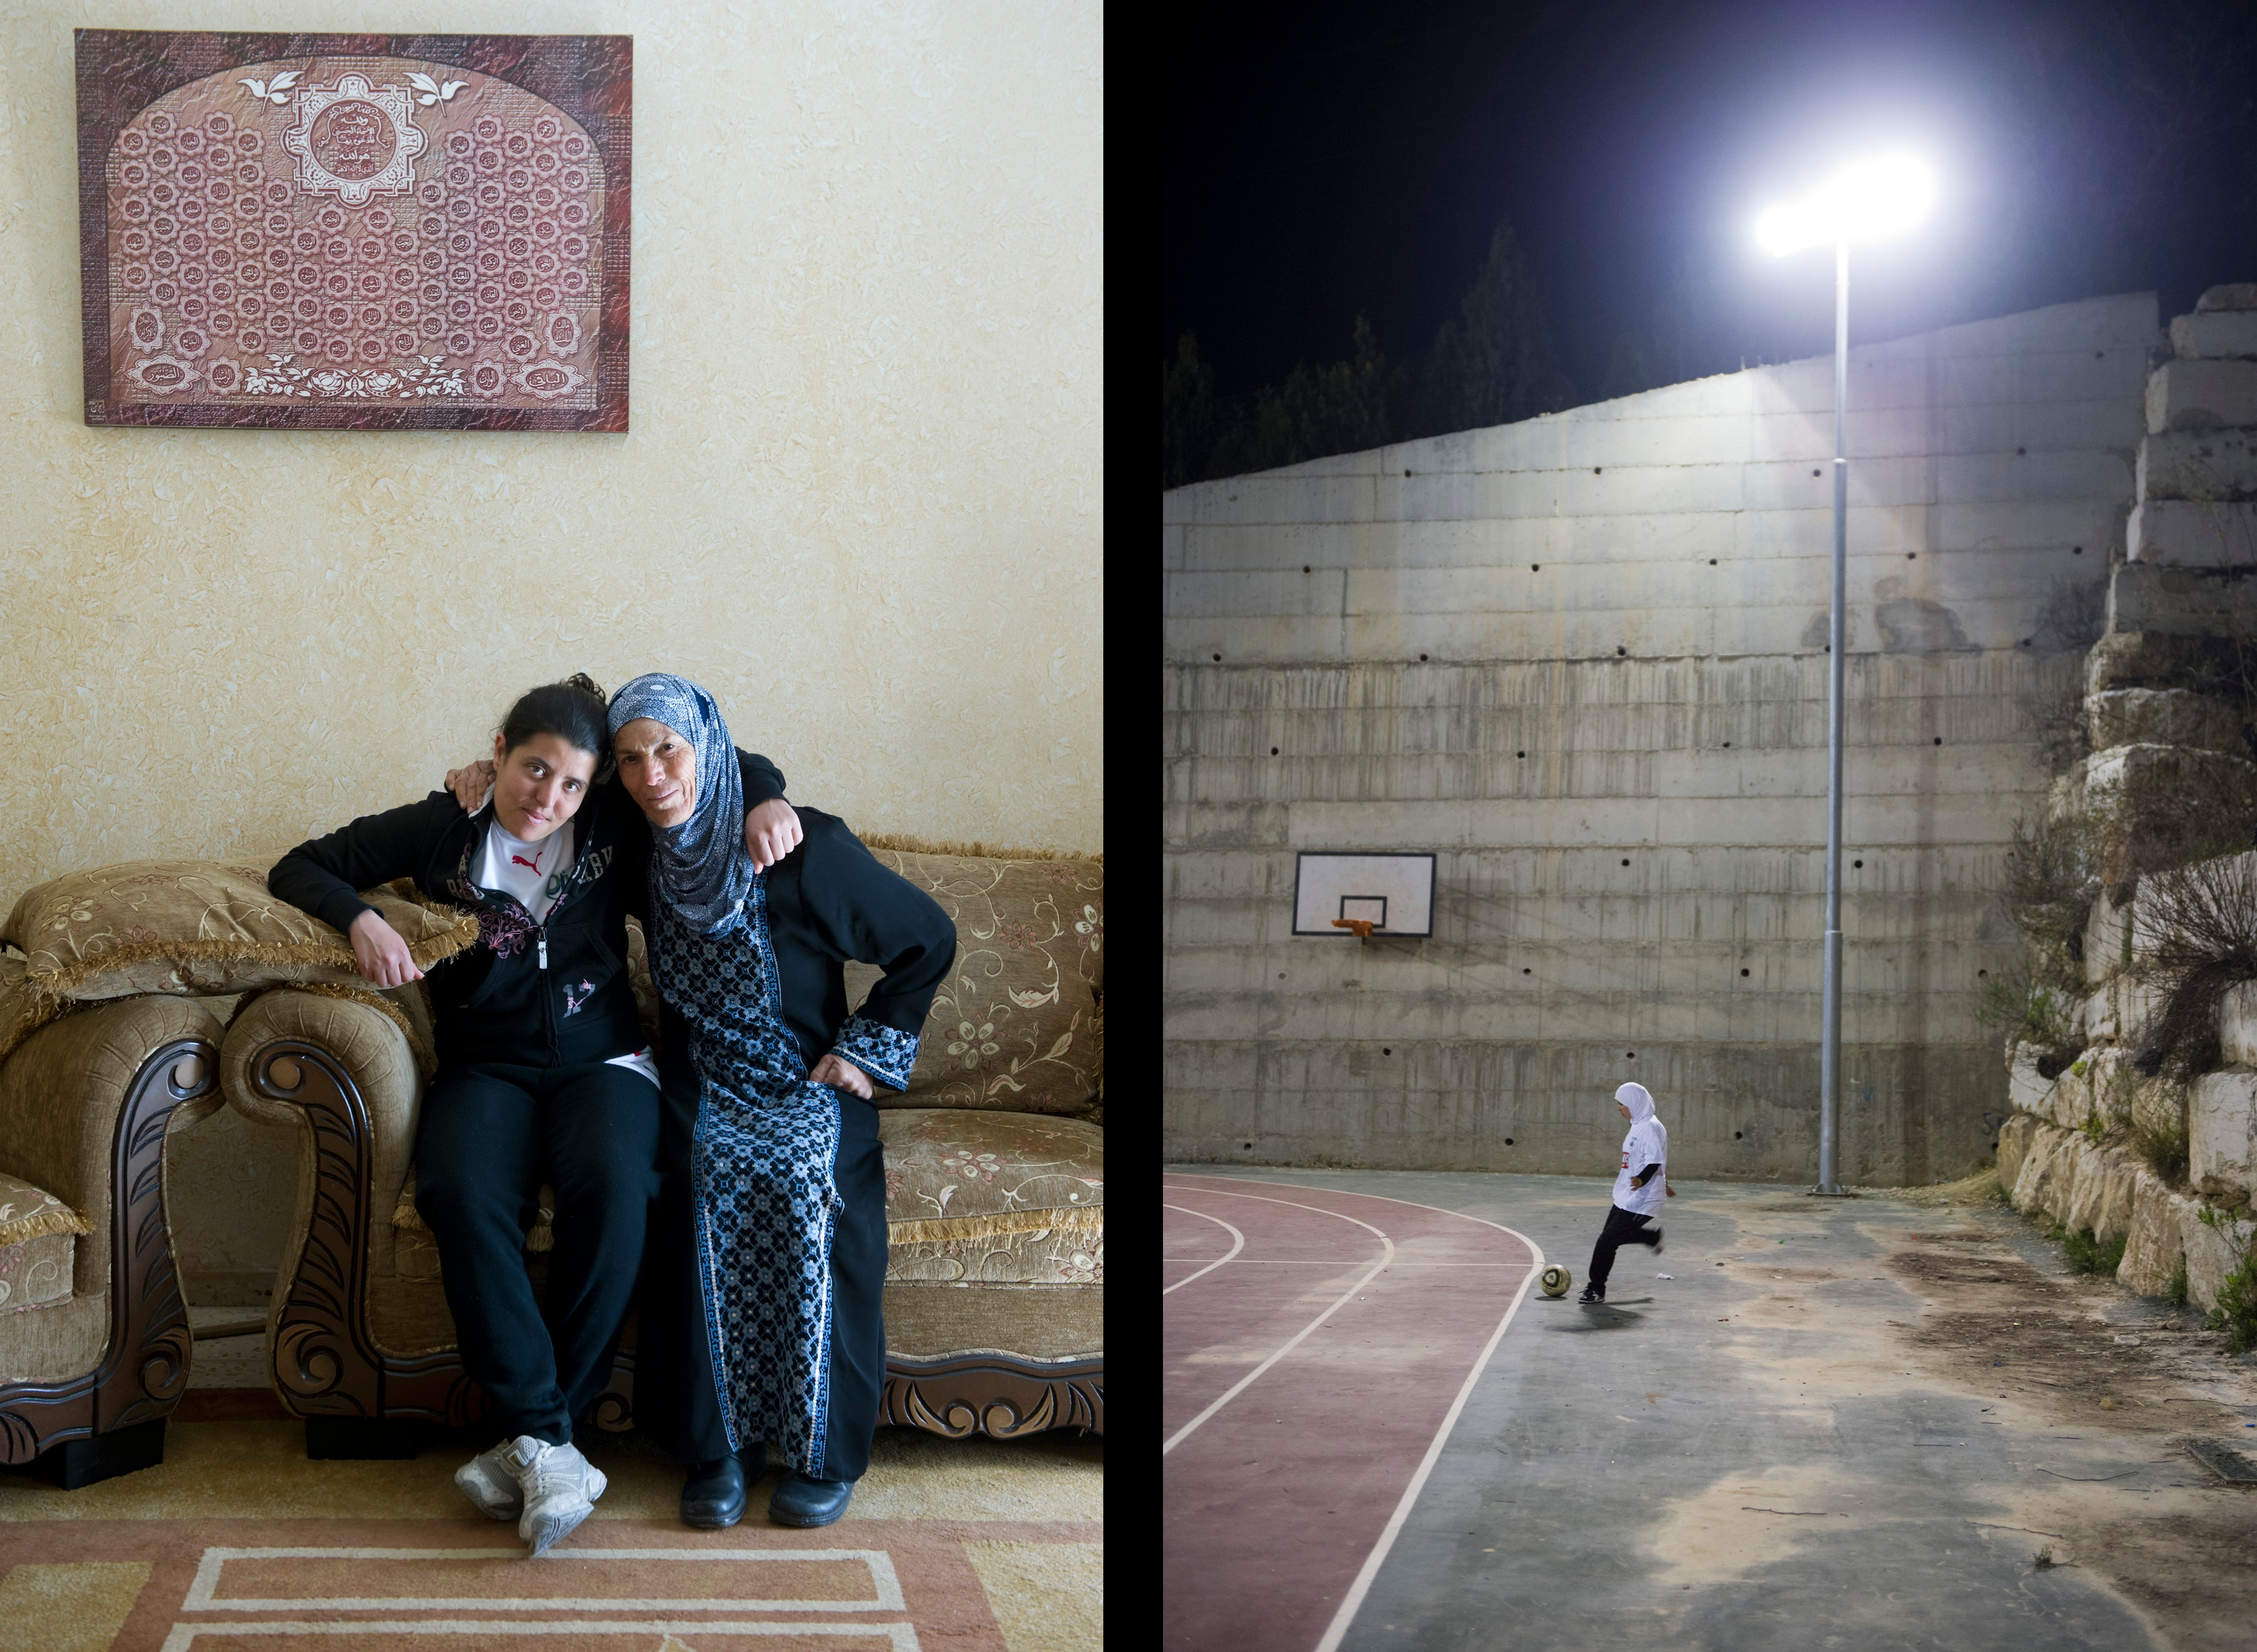 Sarab al-Shaer with her foster mother (left). She was raised in a village for orphans near Bethlehem. Sarab is a Muslim and defender for Diyar Bethlehem and the Palestinian National Team. Nivin al-Kolyab kicking a corner during a training session (right).